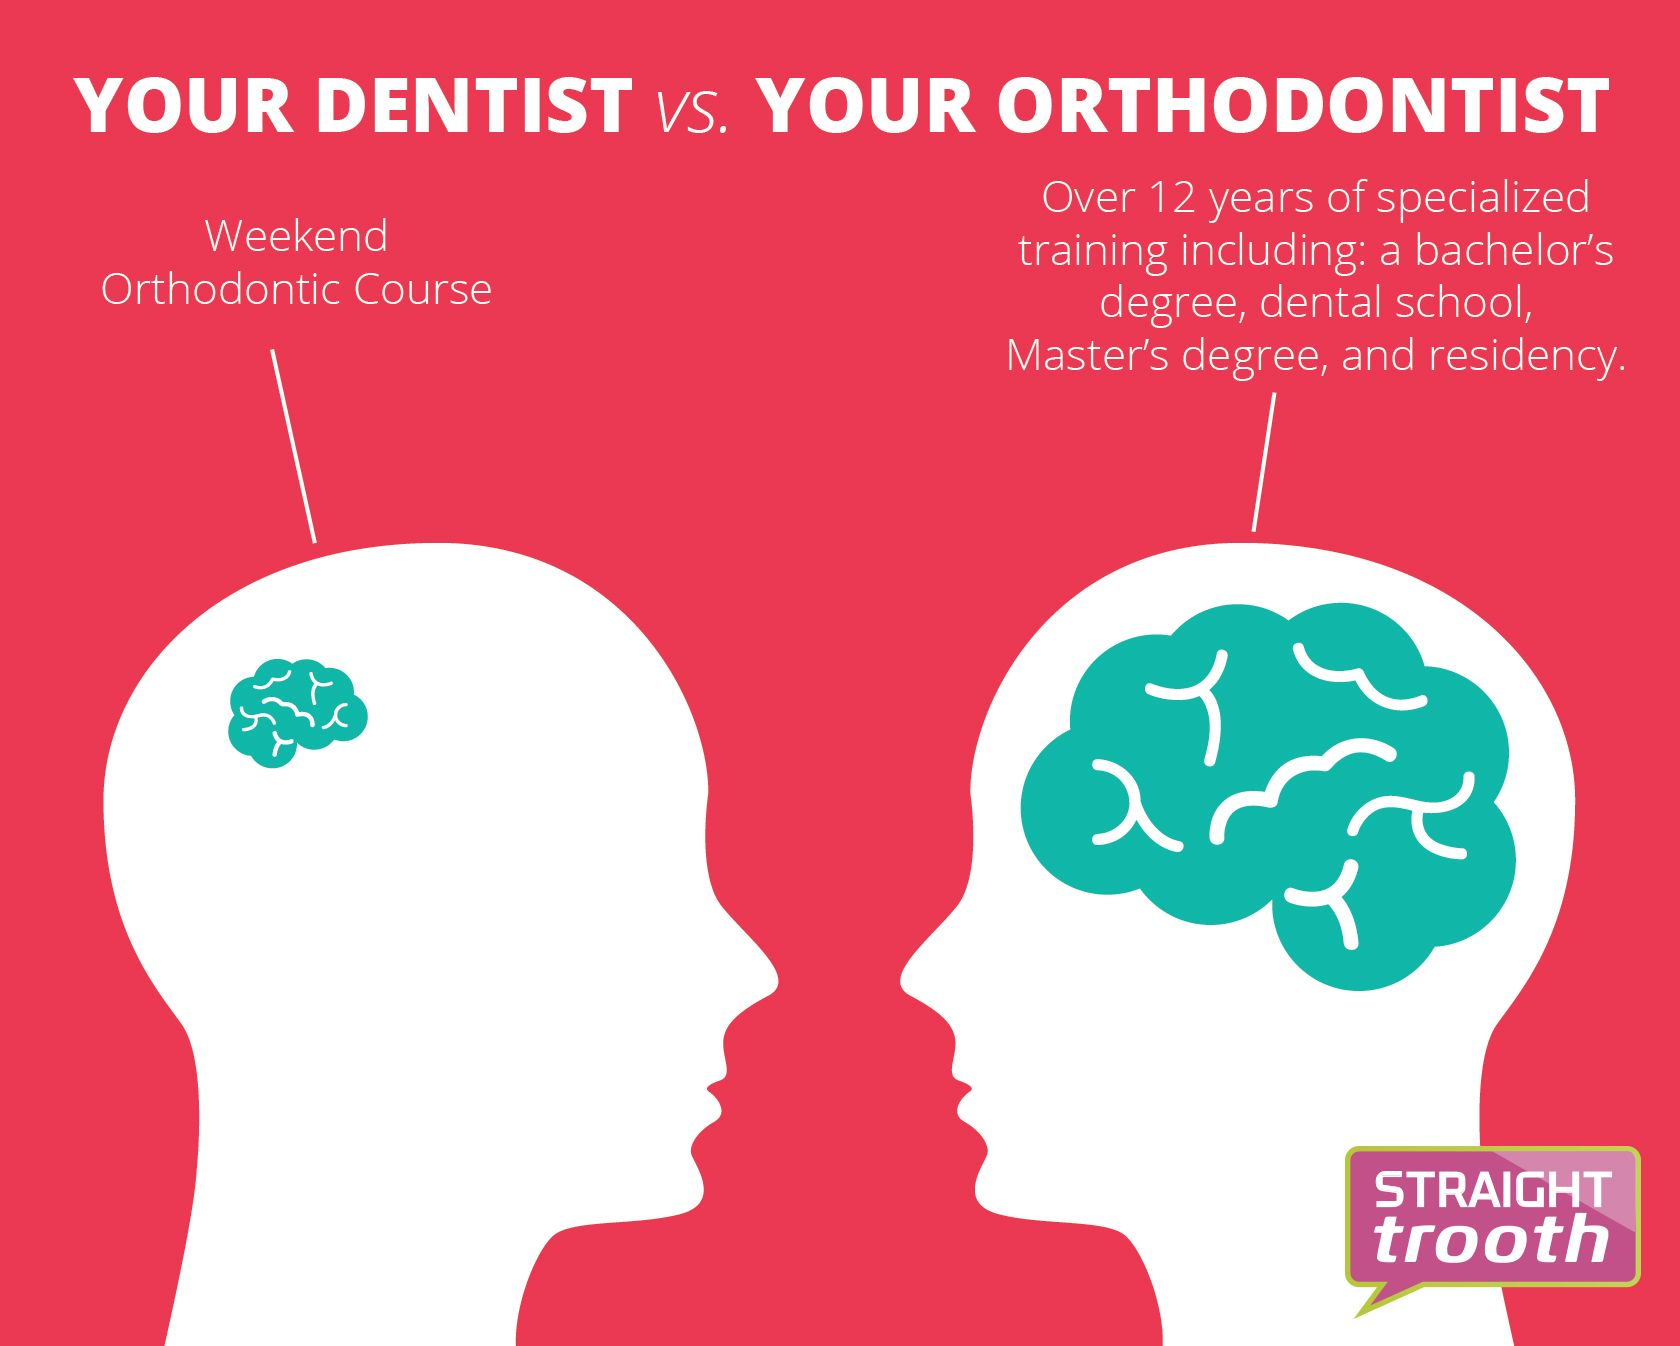 Can i be a dentist with the options i chose?